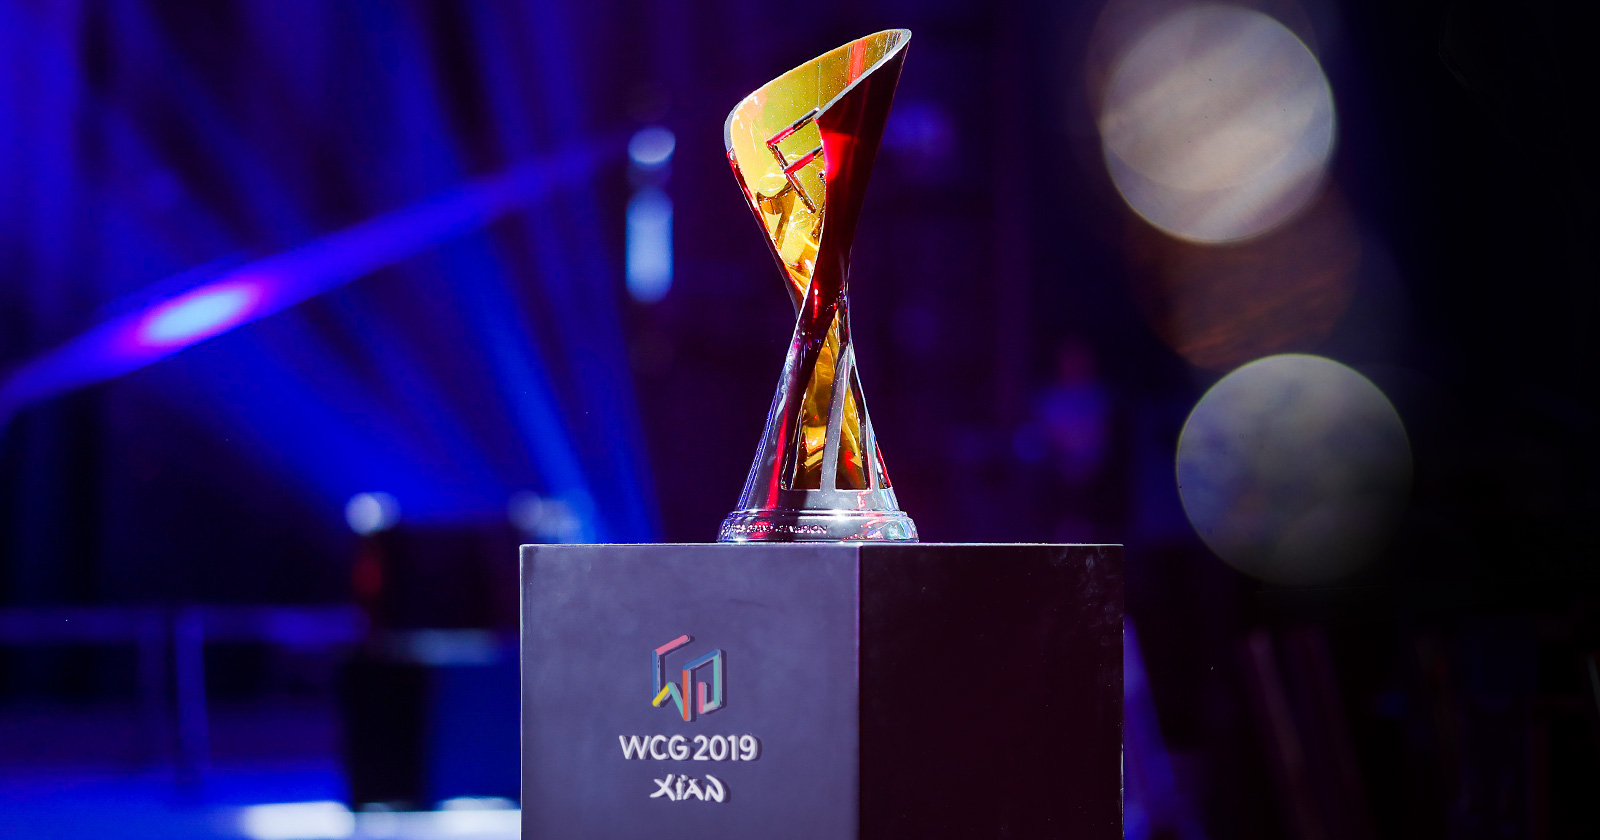 WCG_eSports_Work_Detail_contents_1600x840_1